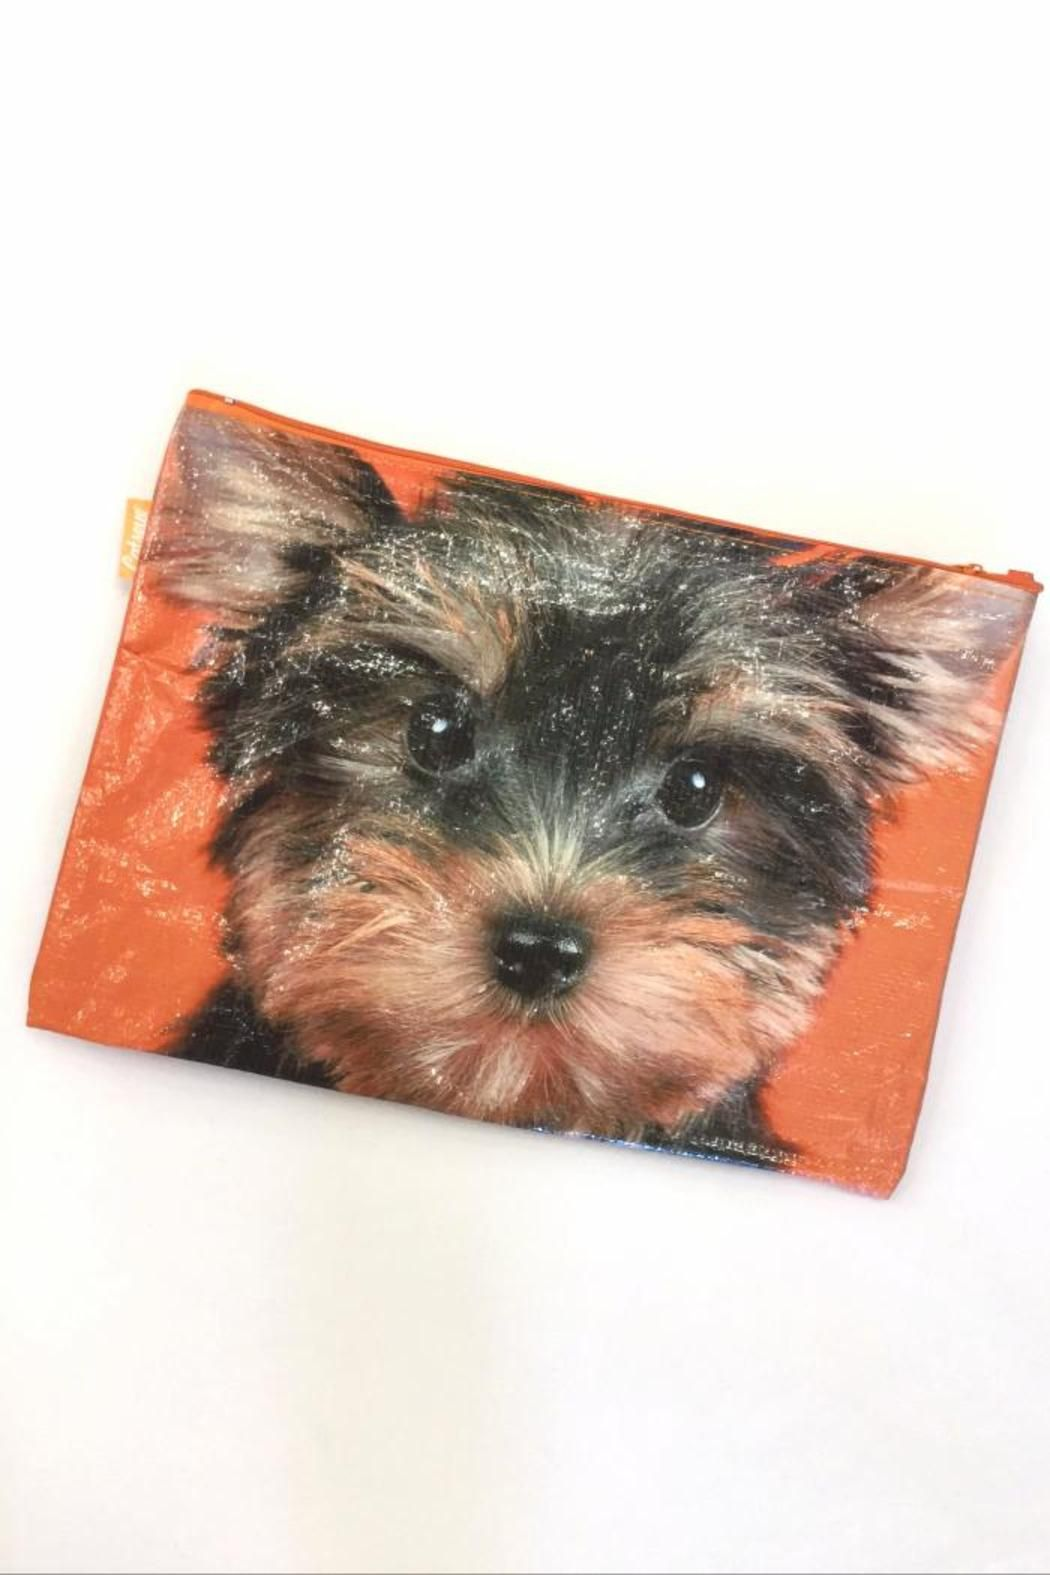 """Water resistant and perfect for passports, papers or just a great makeup carryall! Great organizer pouch for those keeping your treasures safe! Measures 9"""" x 13""""   Yorkie Pouch by Catseye London. Home & Gifts - Gifts & Things Santa Monica, Los Angeles, California"""